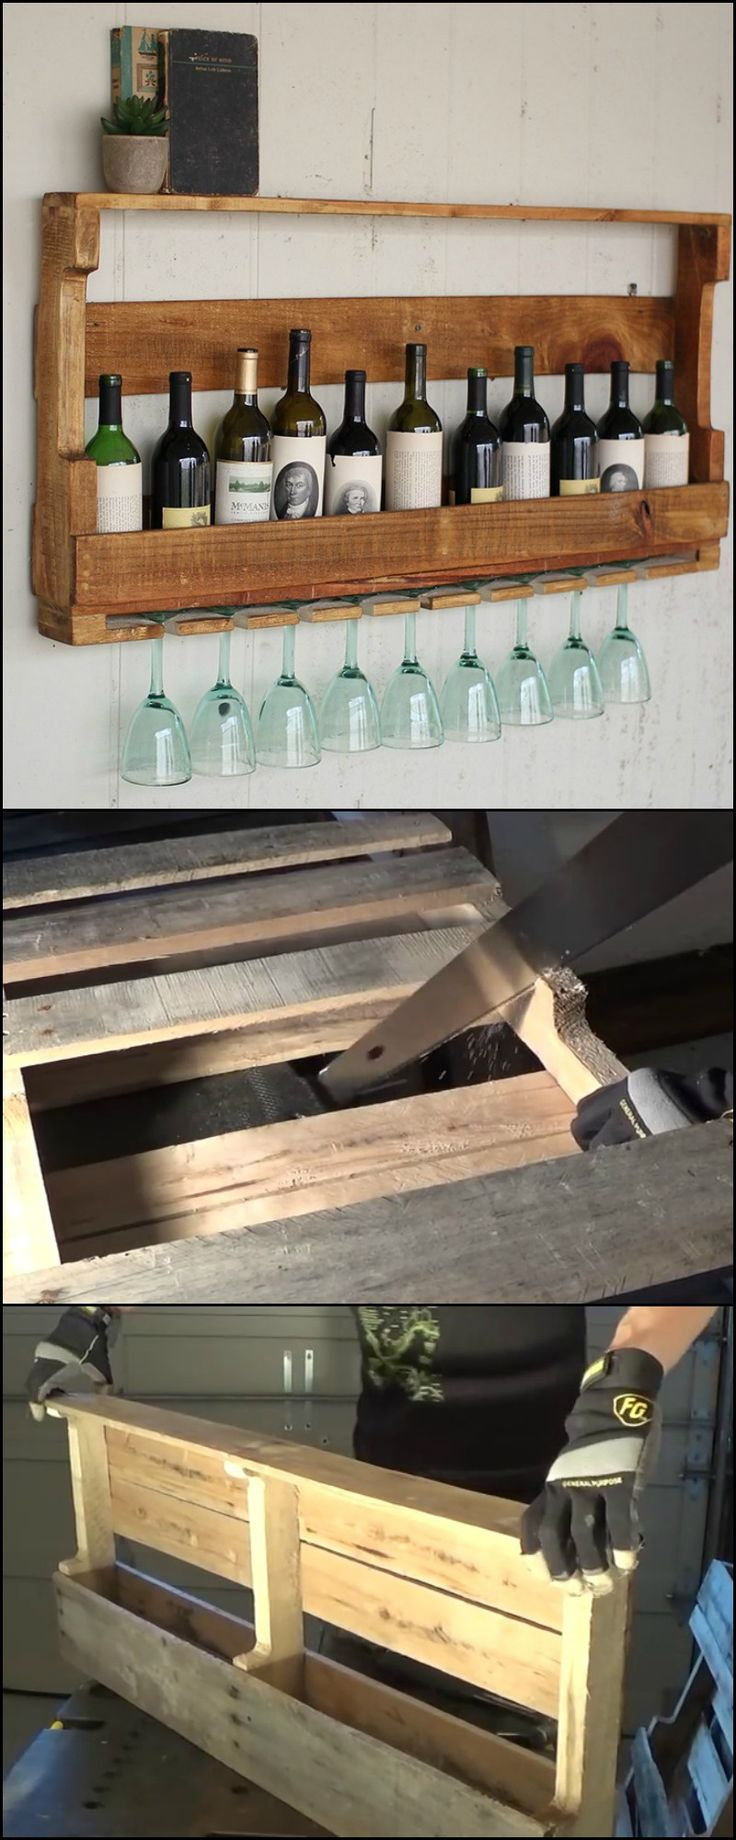 Design Diy Wine Rack best 25 diy wine racks ideas on pinterest rack inspiration from recycled pallet this storage idea is perfect for lovers who don